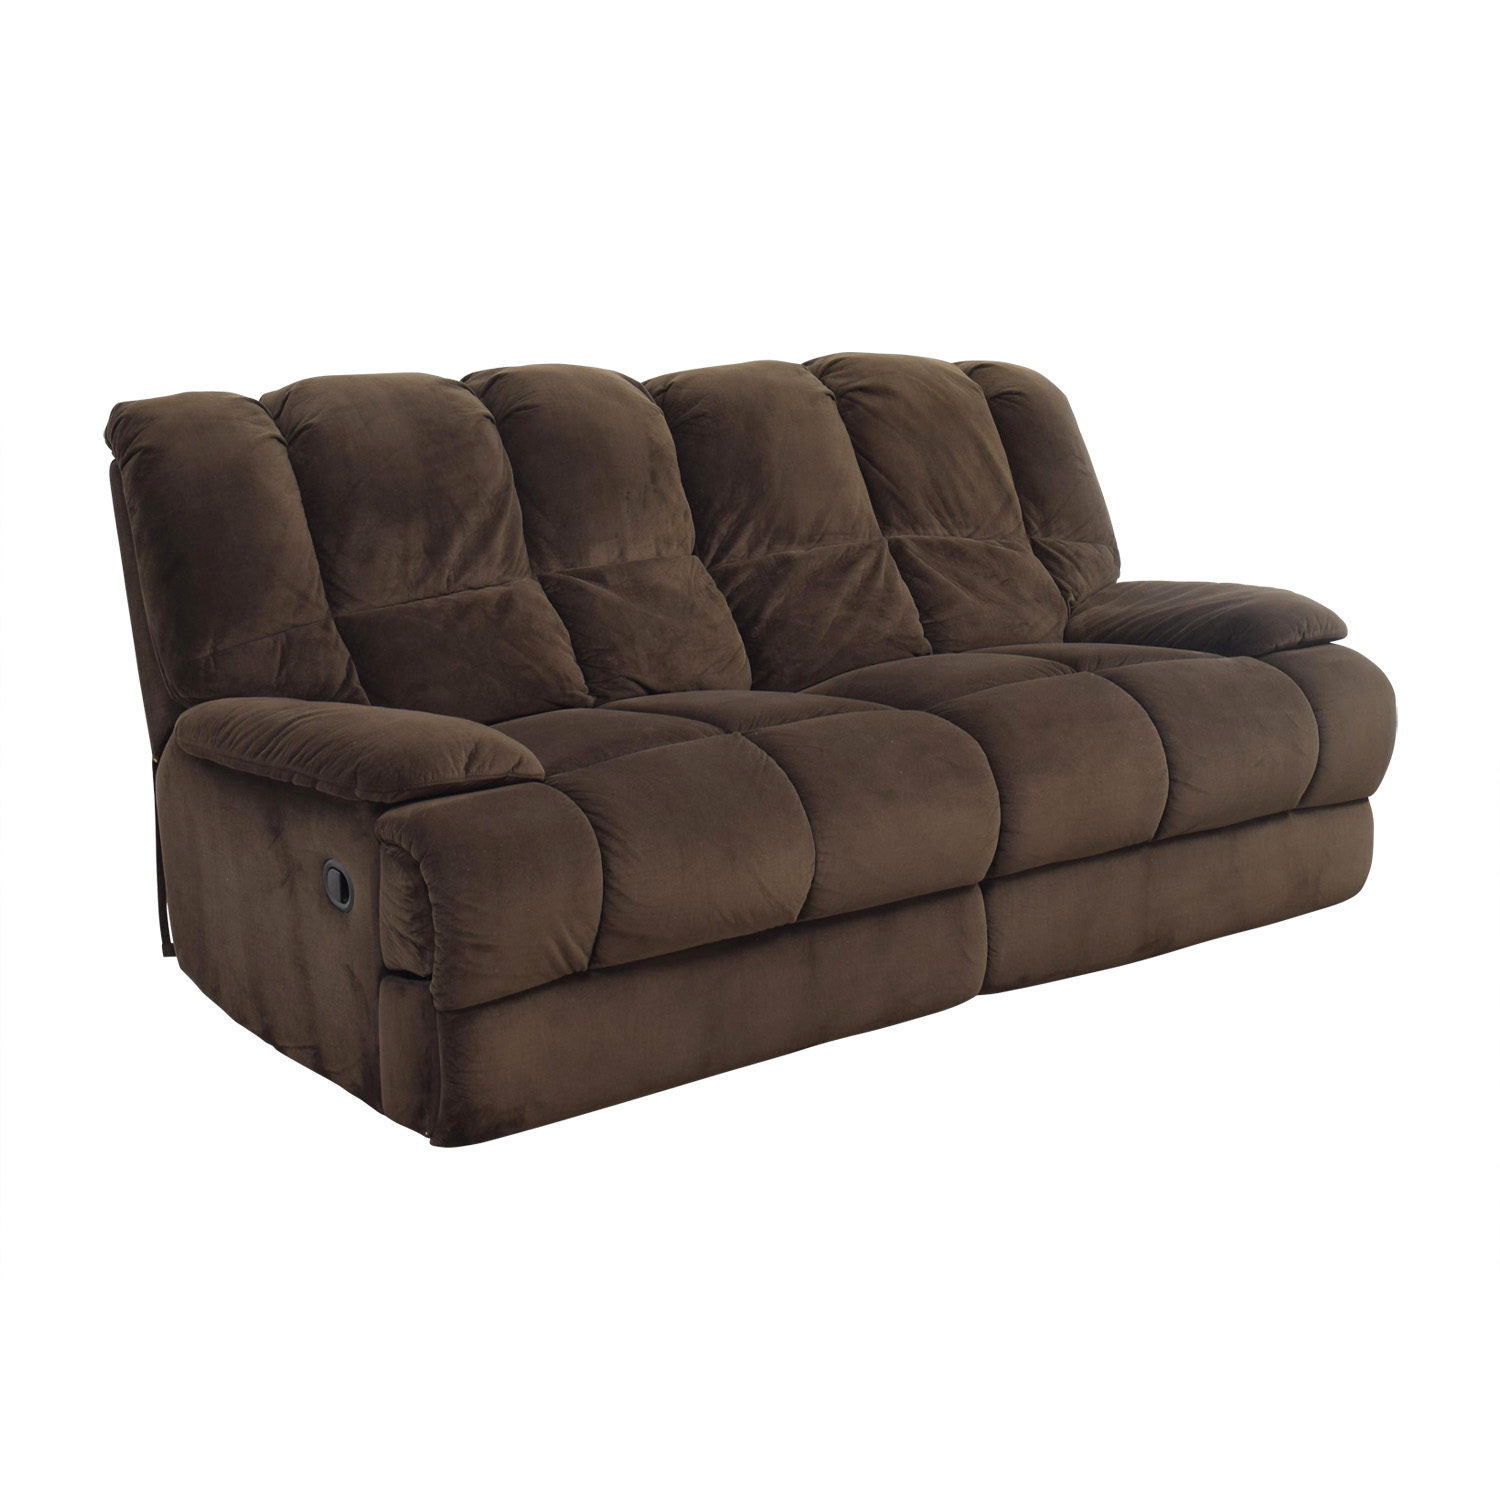 ... Shop American Signature Furniture Brown Recliner Sofa American  Signature Furniture Chairs ...